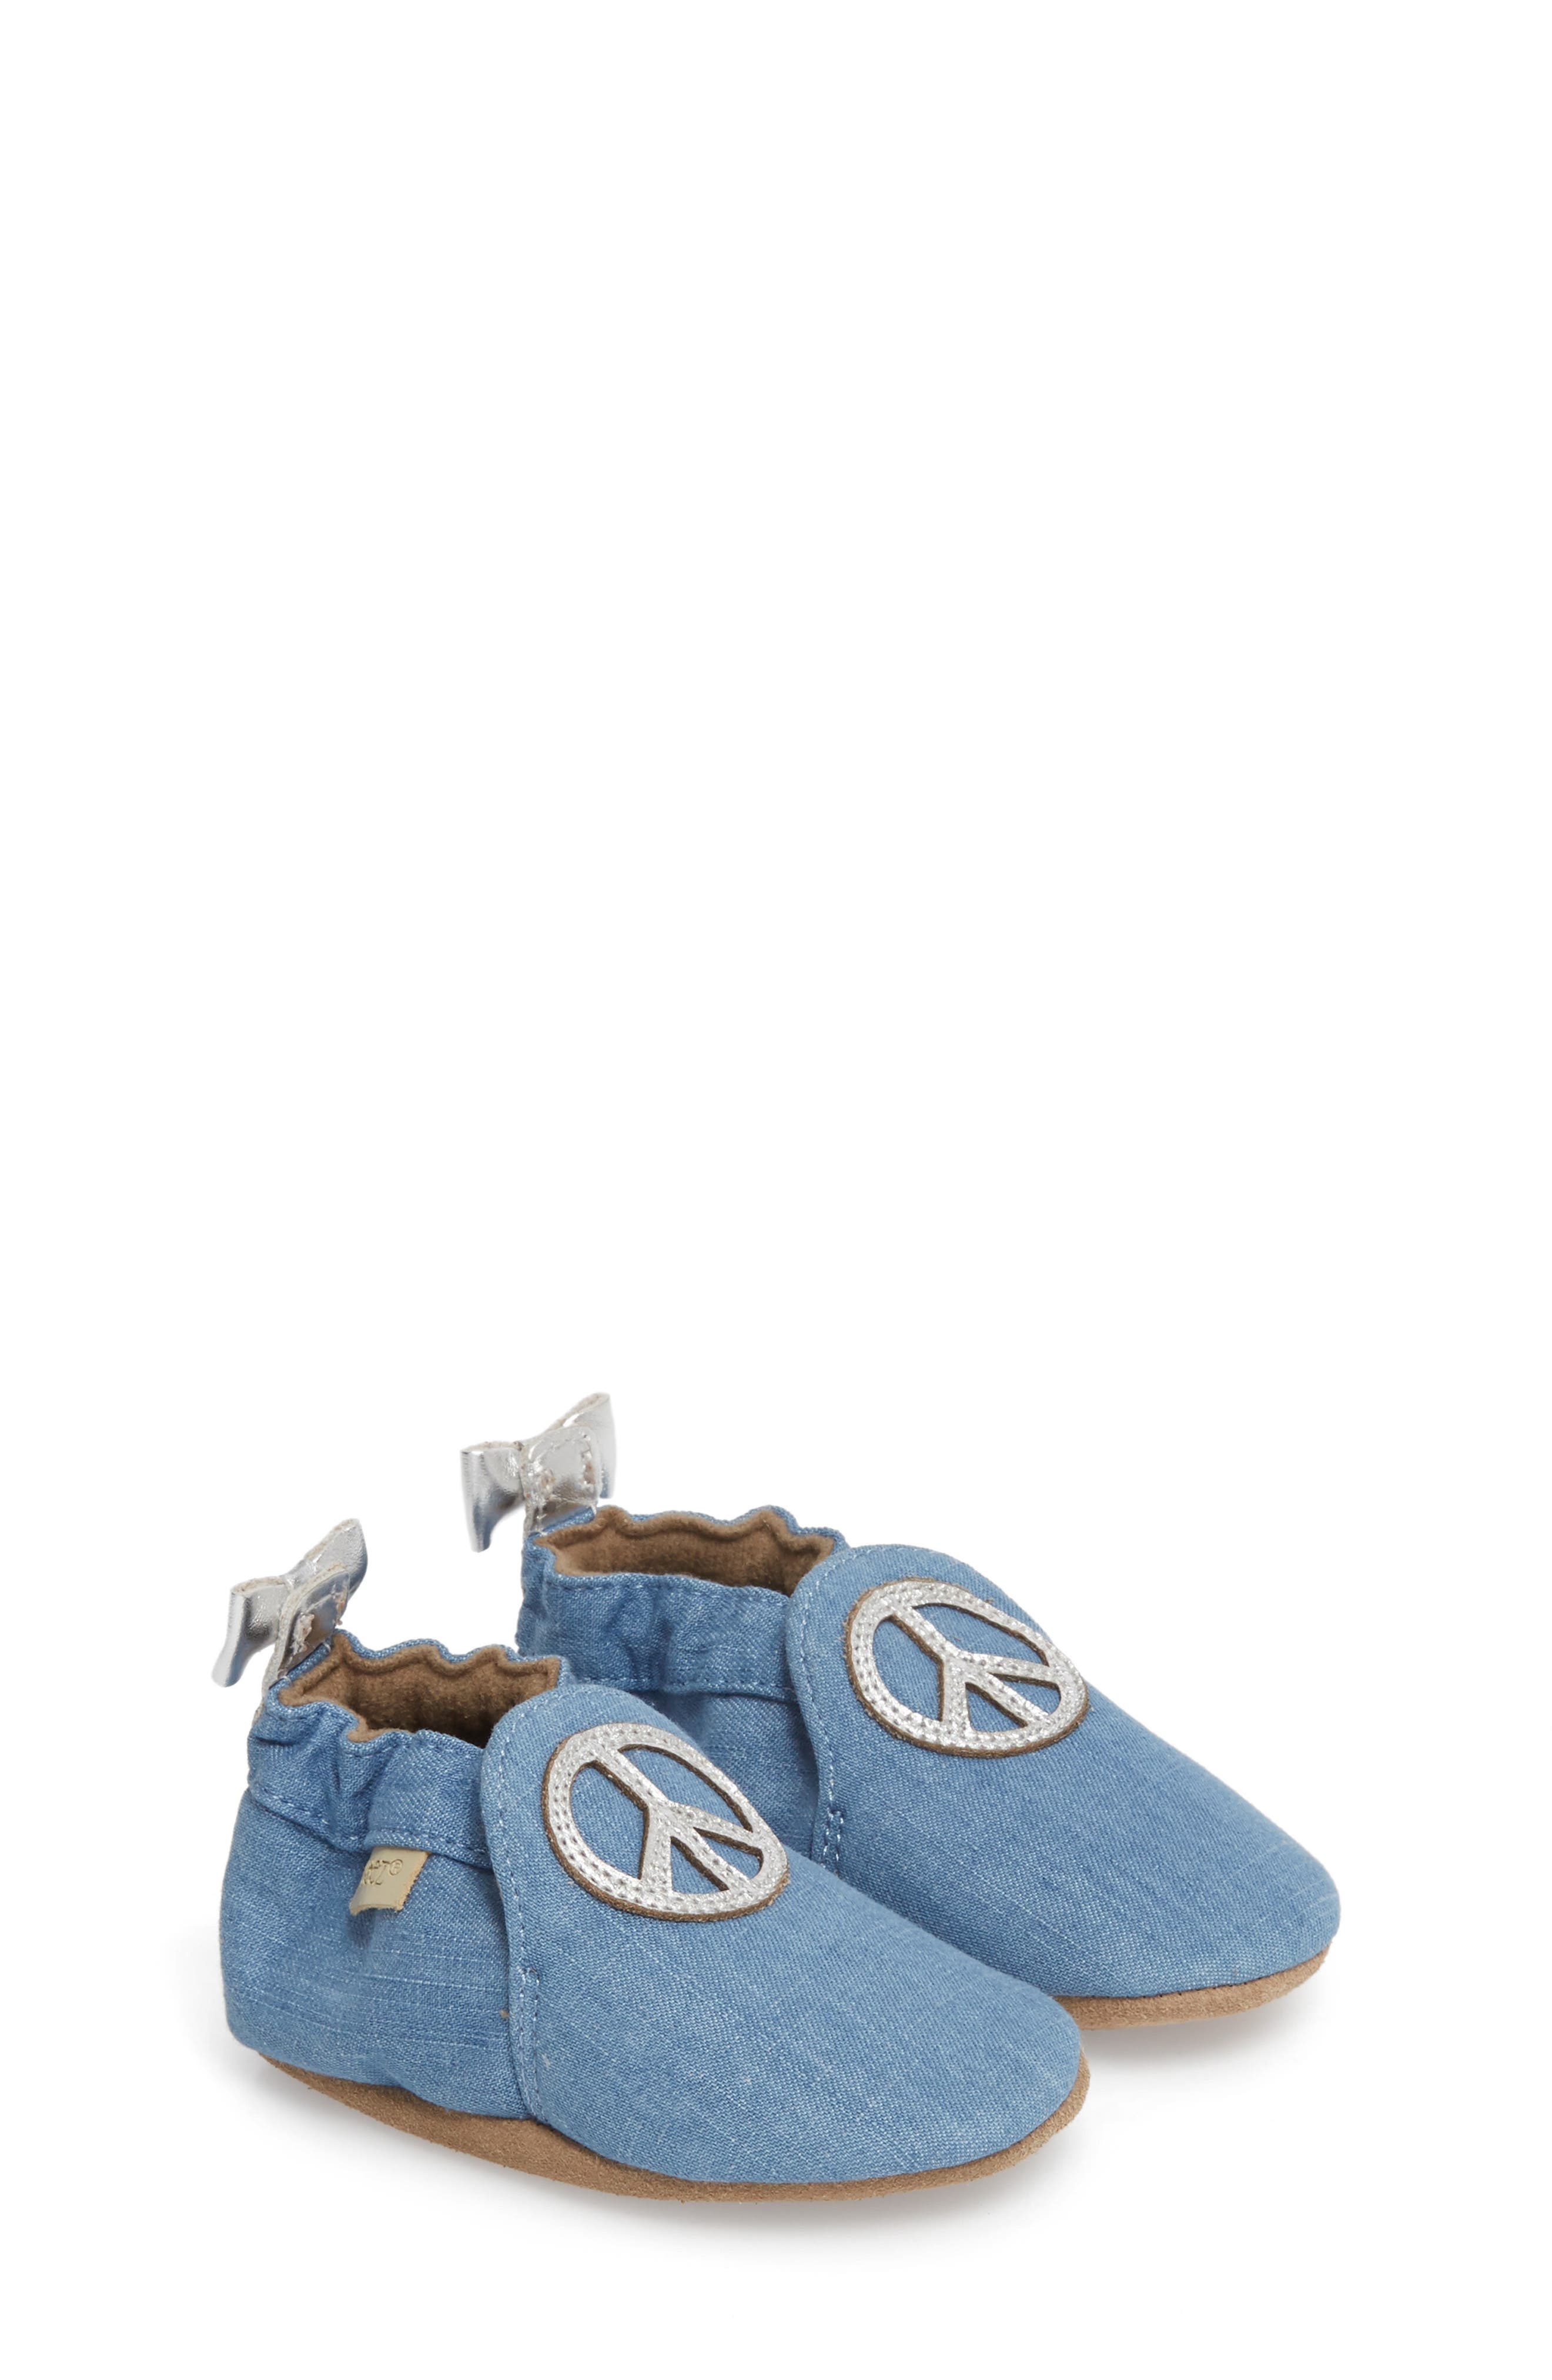 Peace Out Moccasin Crib Shoe,                             Main thumbnail 1, color,                             BLUE